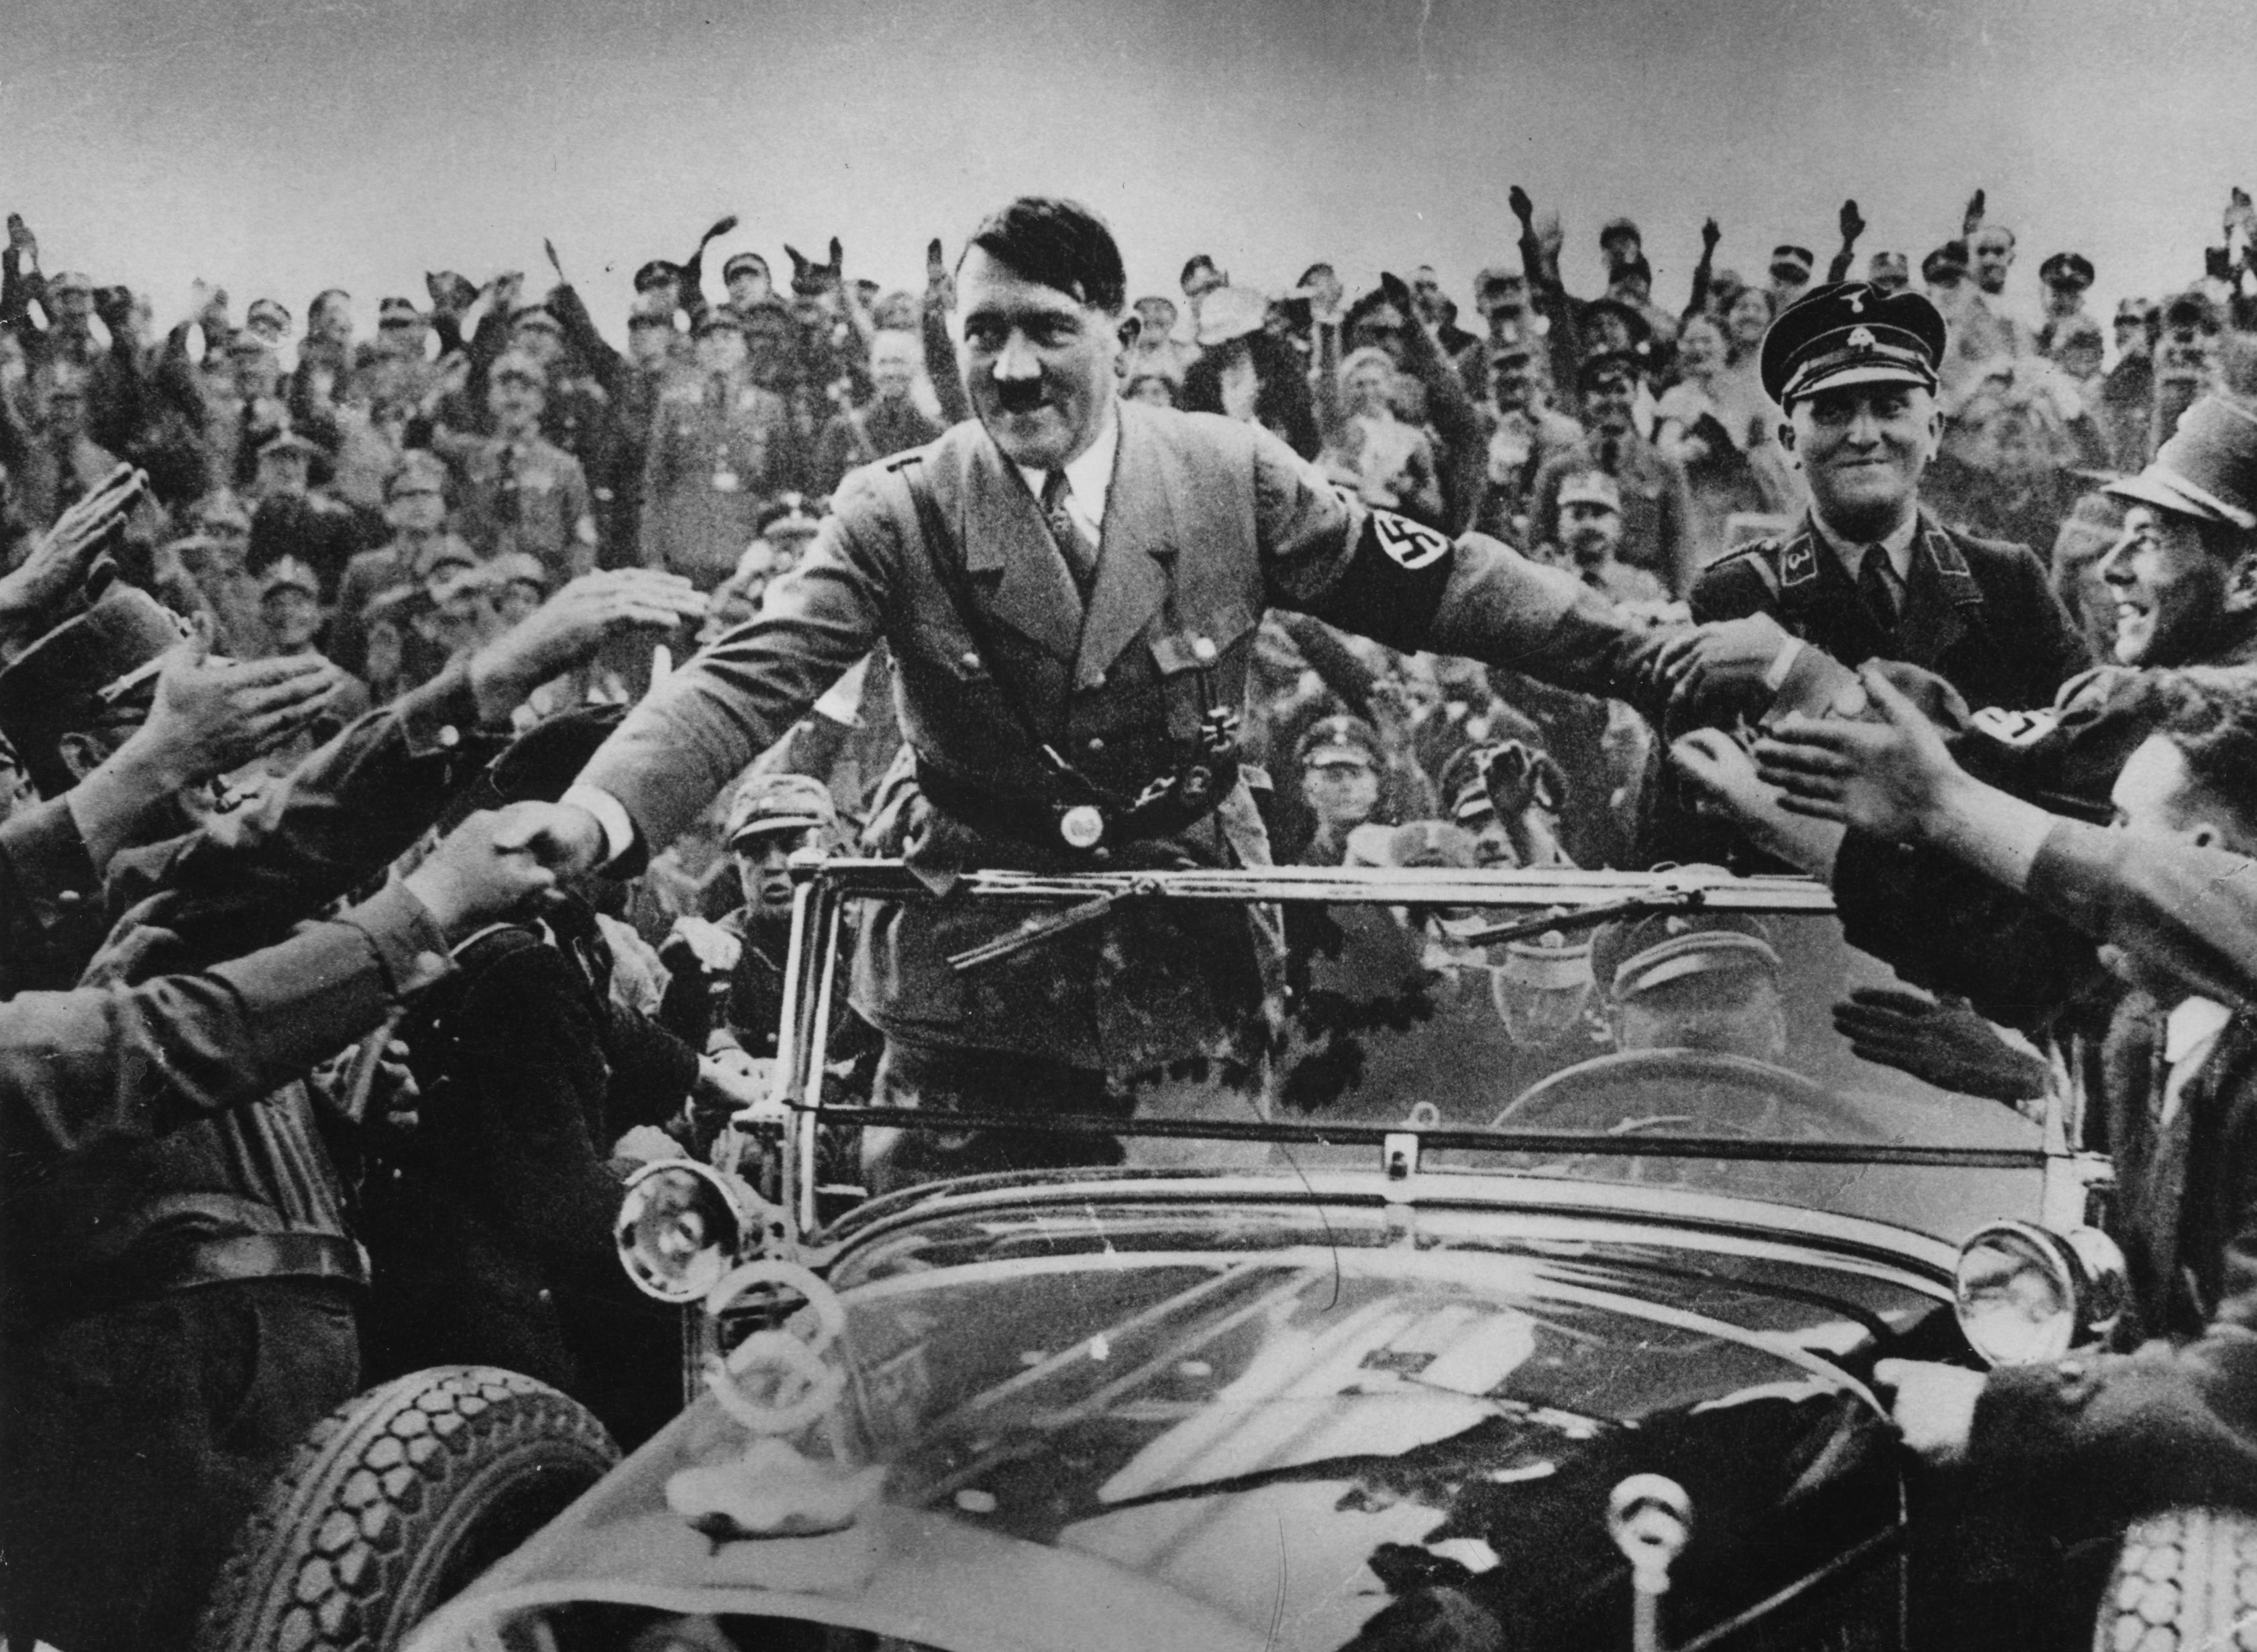 Film probes Hitler's narcotics habit - The Boston Globe